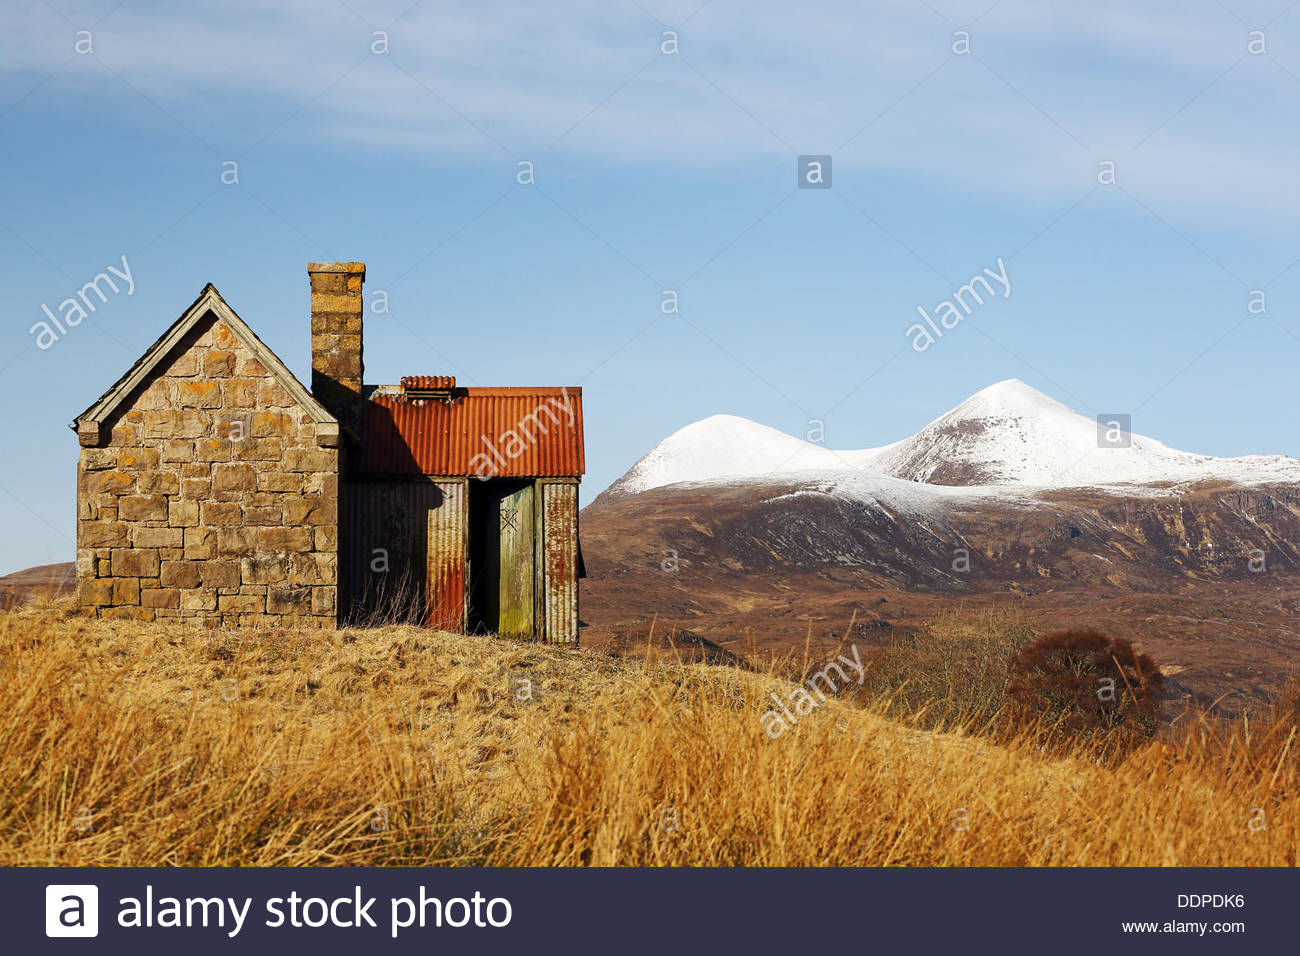 An old deserted stone hut on a hill with the mountain of Ben More in the distance. From Sutherland in the Scottish highlands. - Stock Image